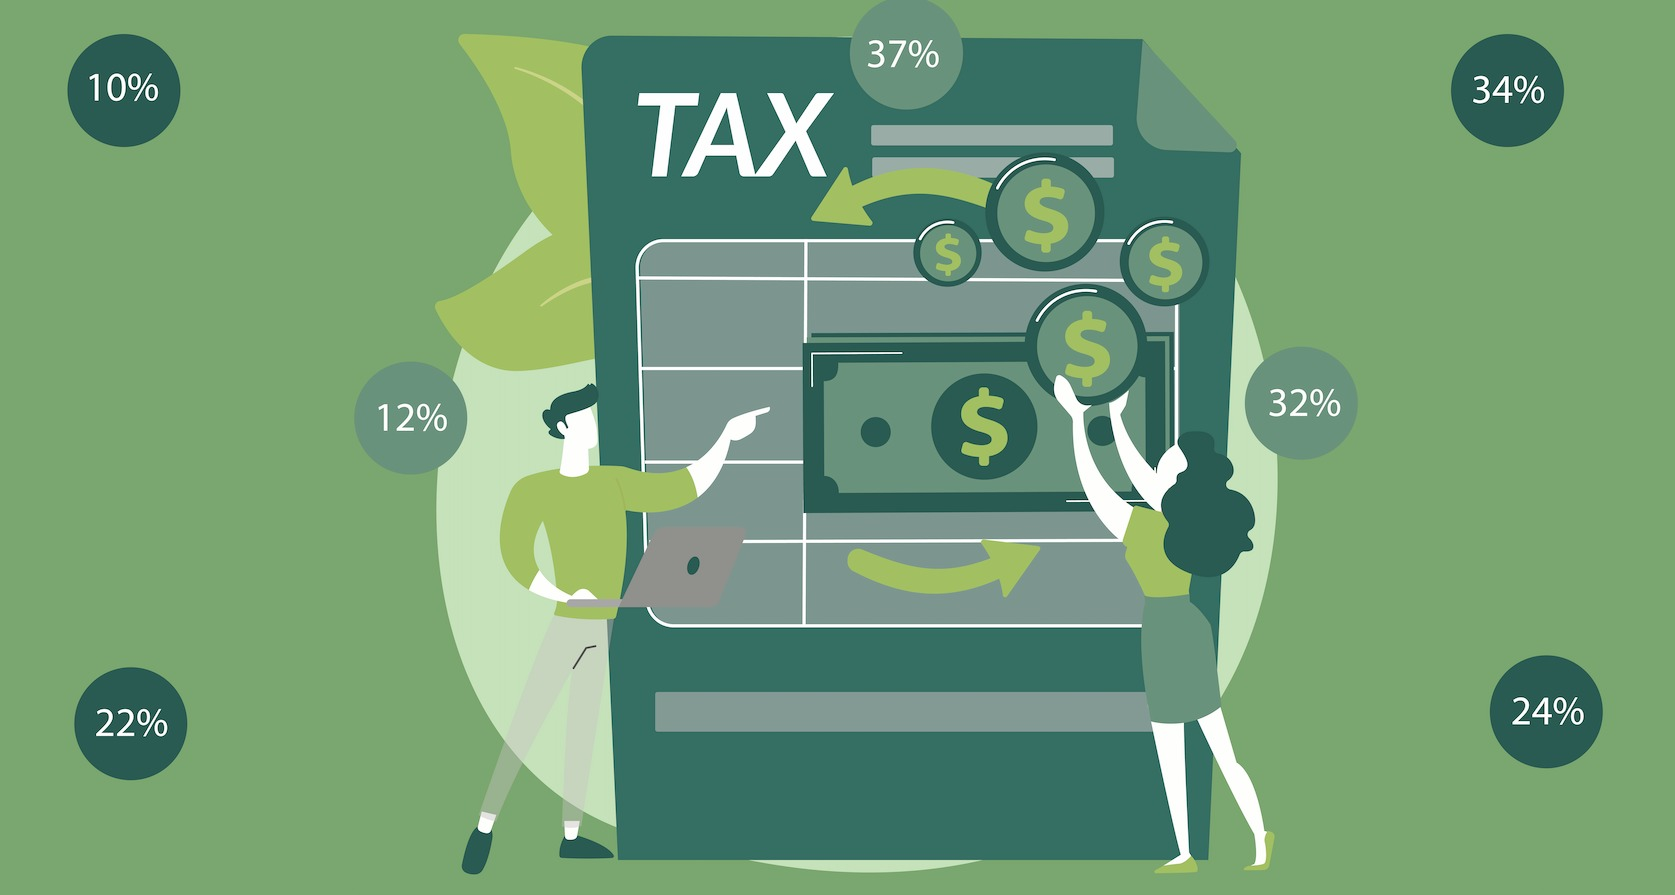 COVID-19 May Impact Your Taxes